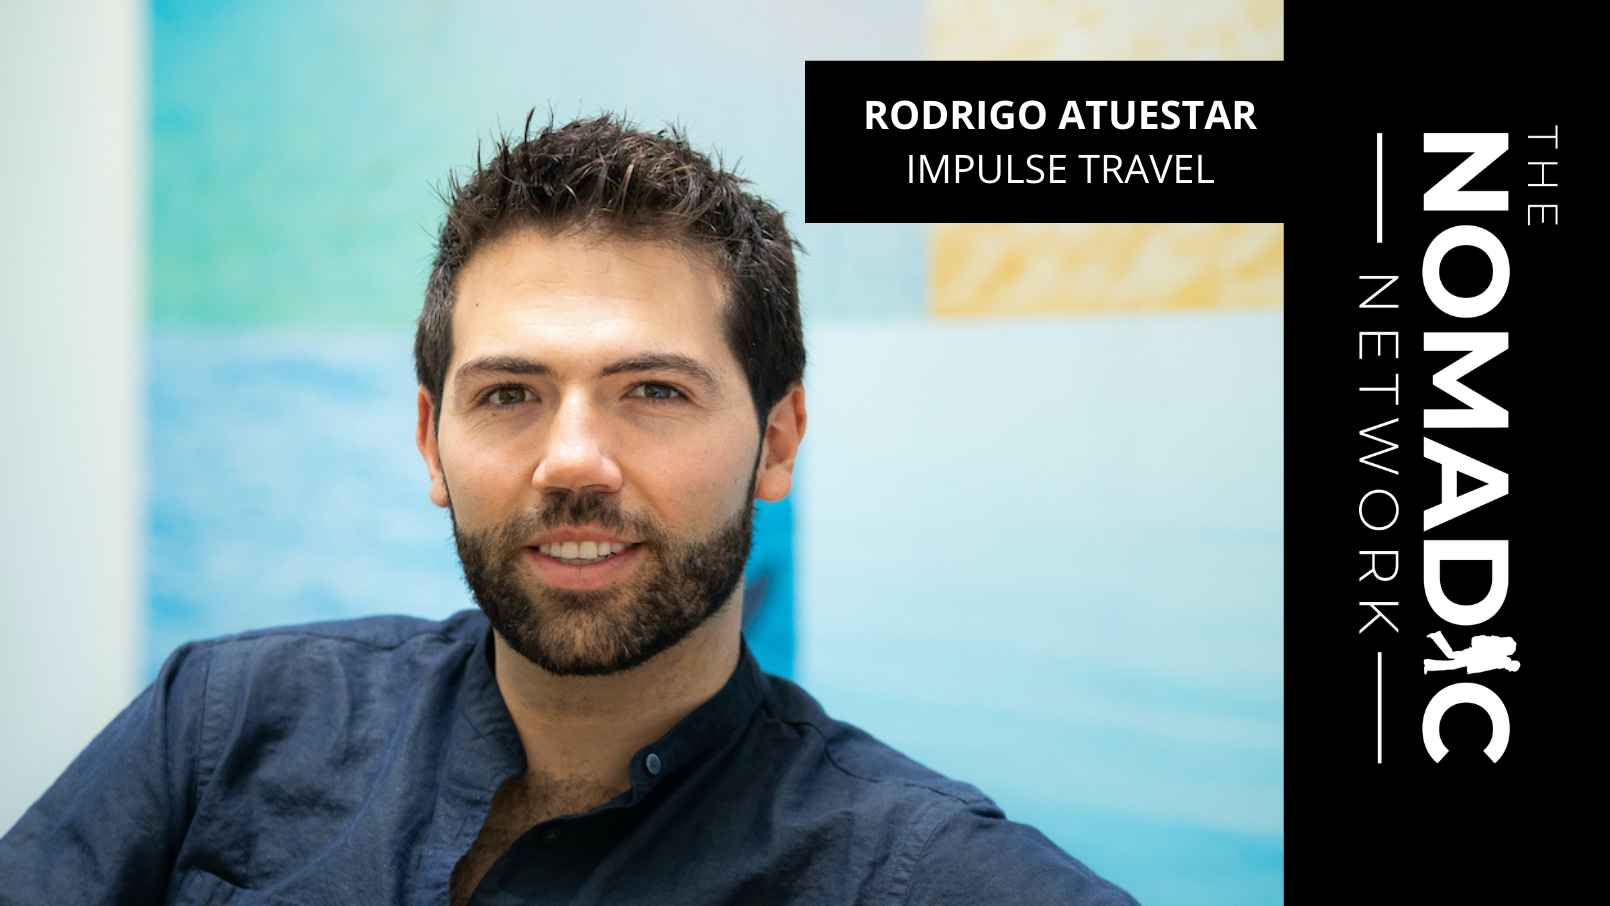 Rodrigo, a tour guide from Colombia